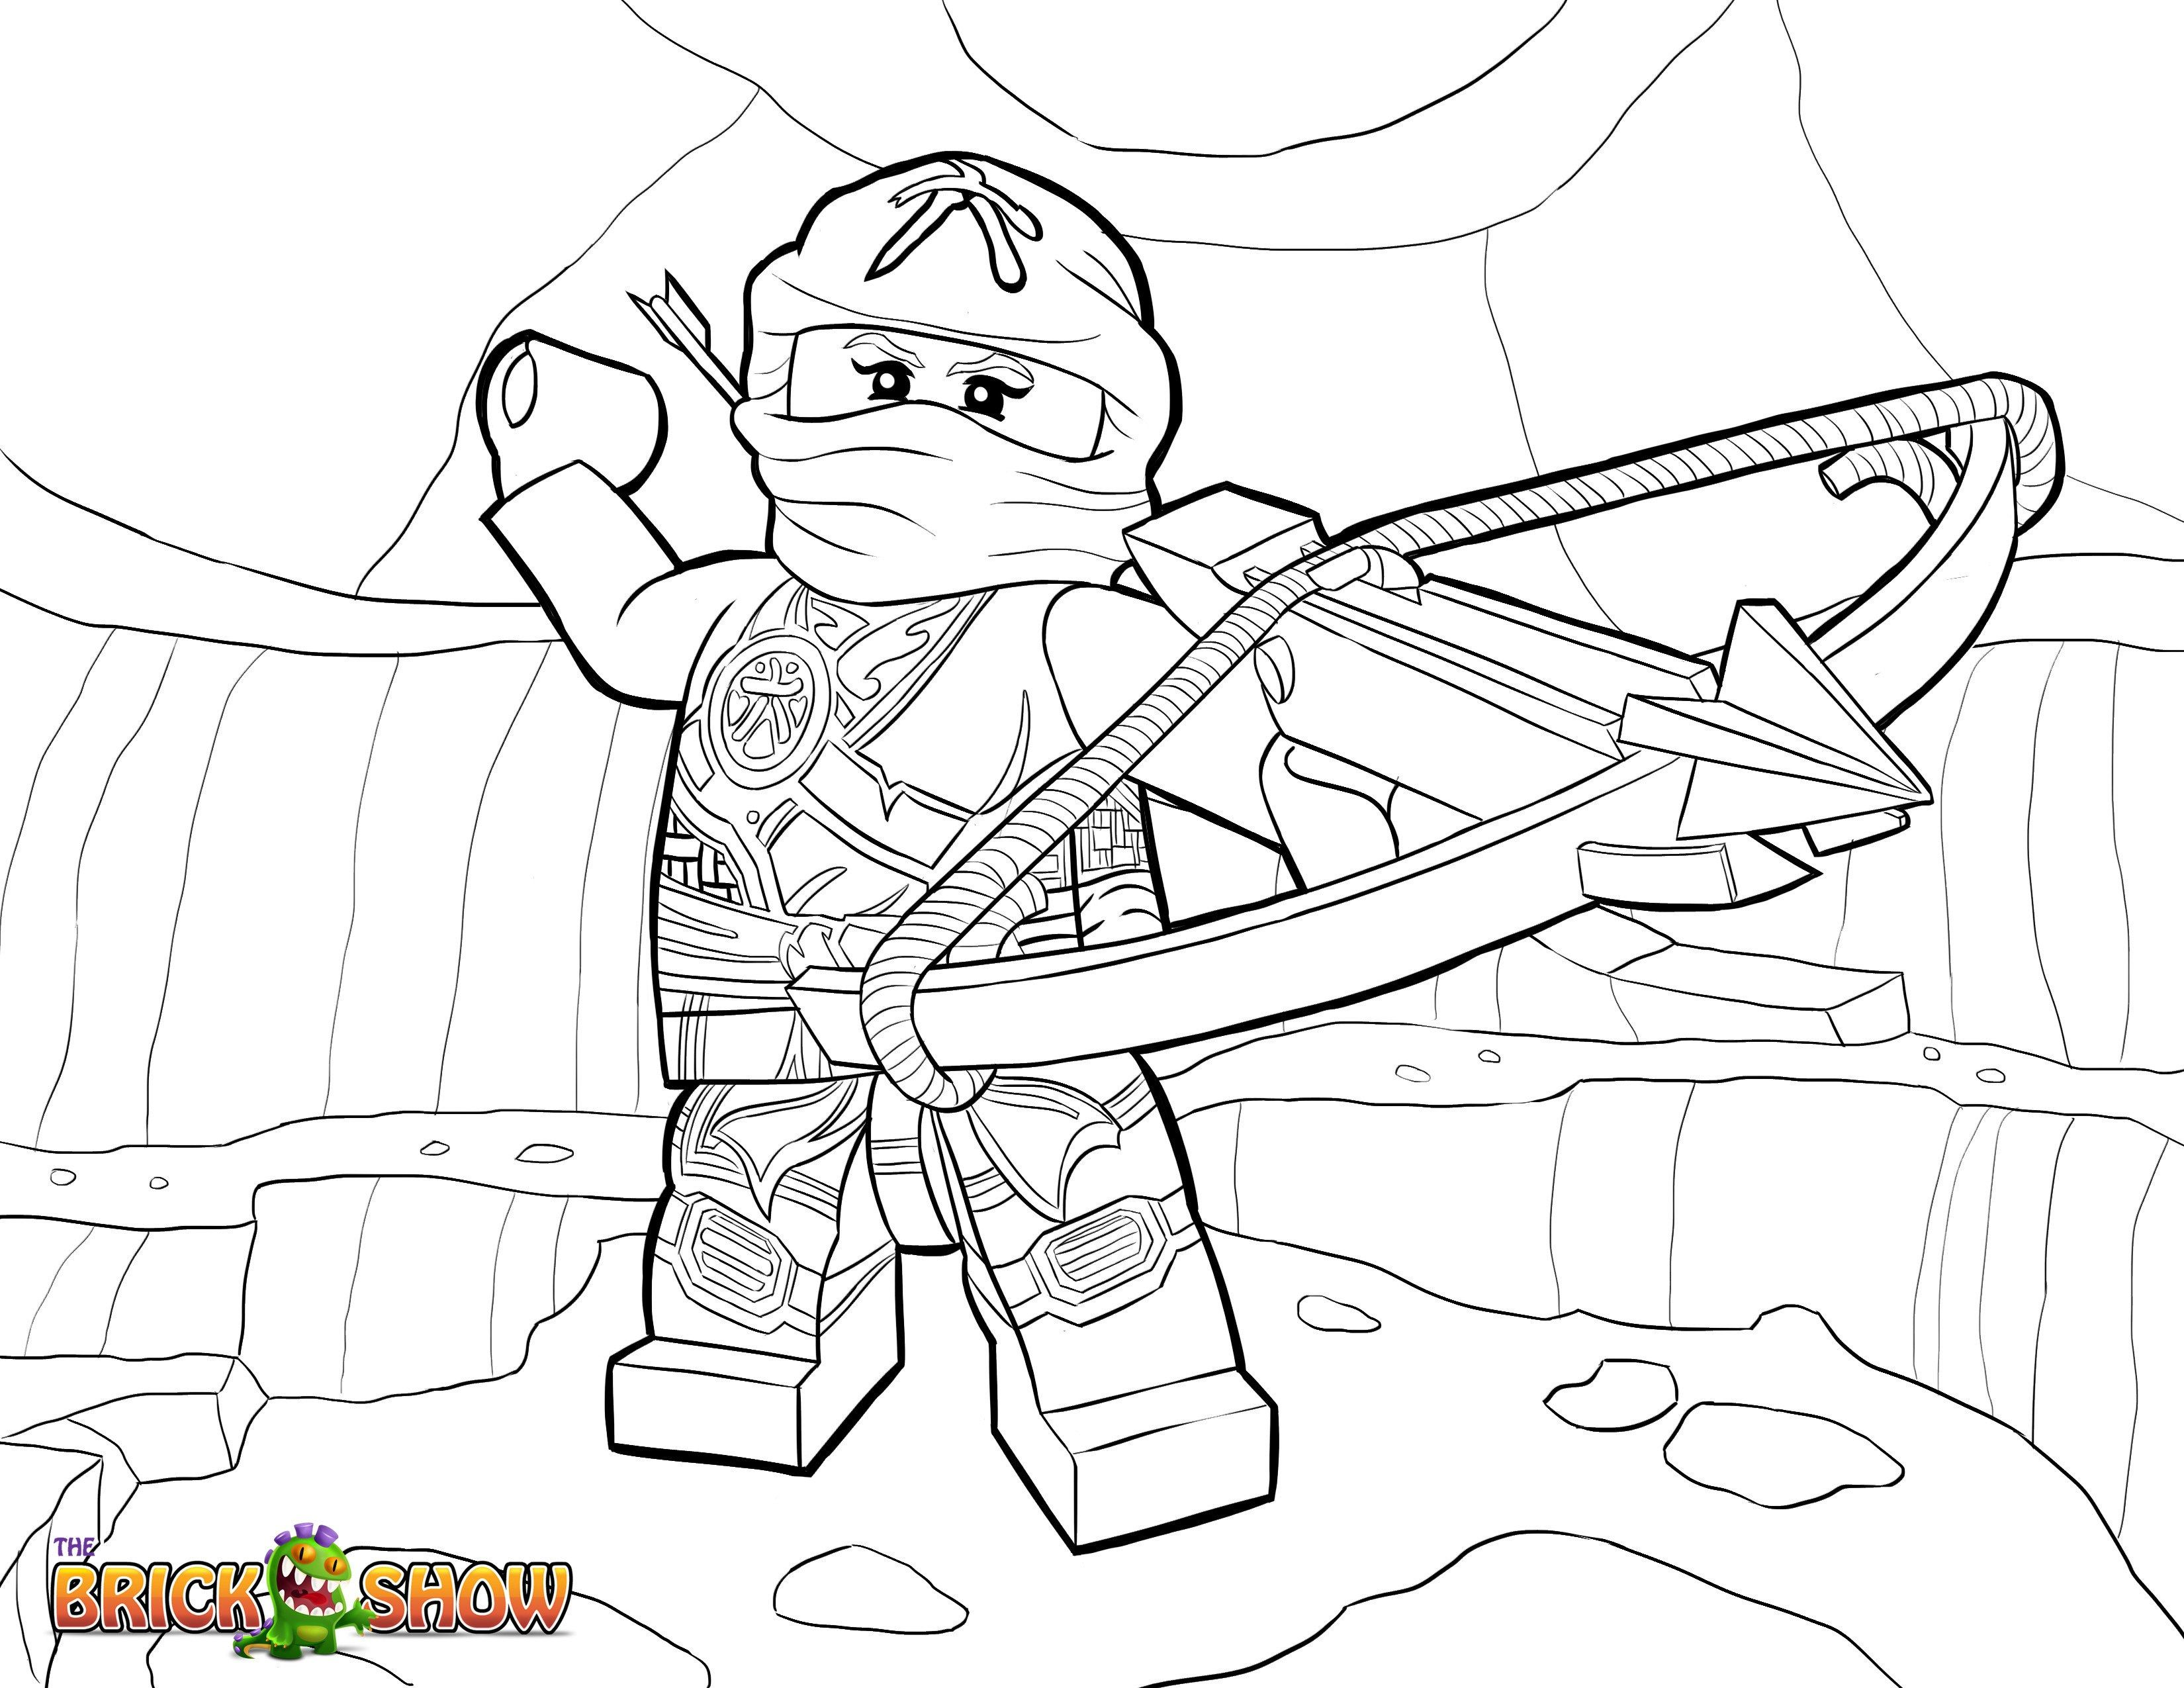 78 Awesome Photos Of Lego Coloring Pages Check More At Https Www Mercerepc Com Lego Coloring Pages Tekenen